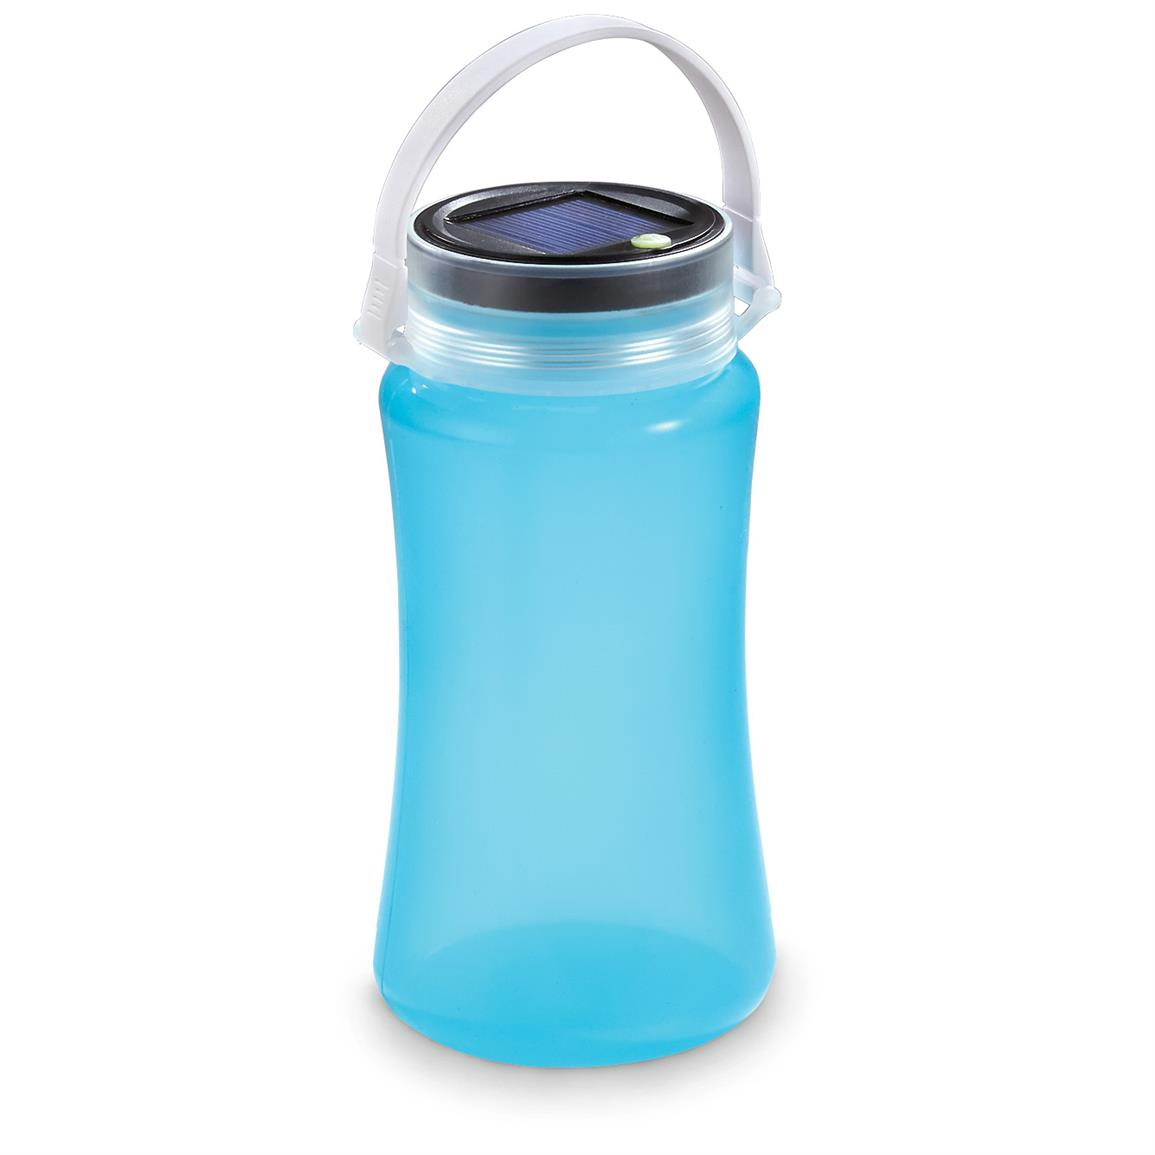 Guide Gear Silicone LED Bottle/Jar Lantern with Solar/USB Charging